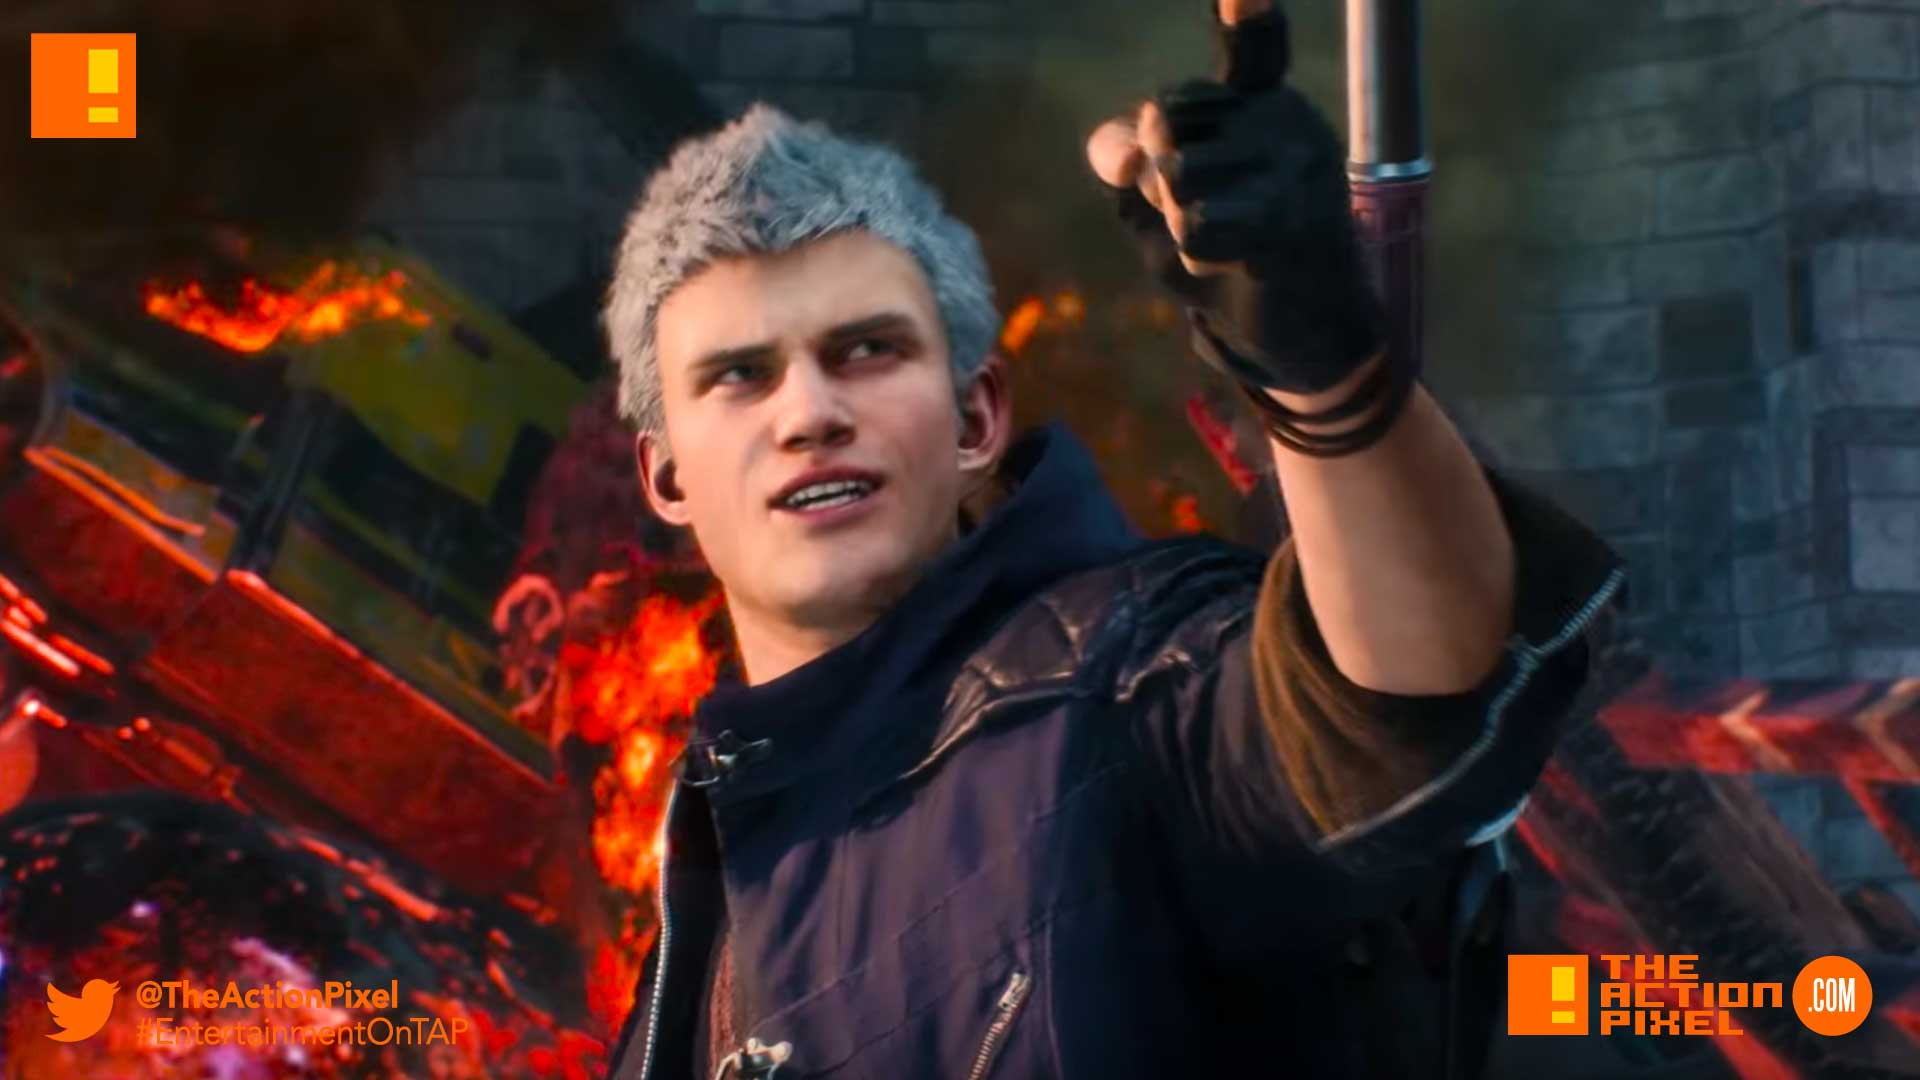 dmc 5, devil may cry 5, devil may cry, dmc, capcom, dante, the action pixel, entertainment on tap,